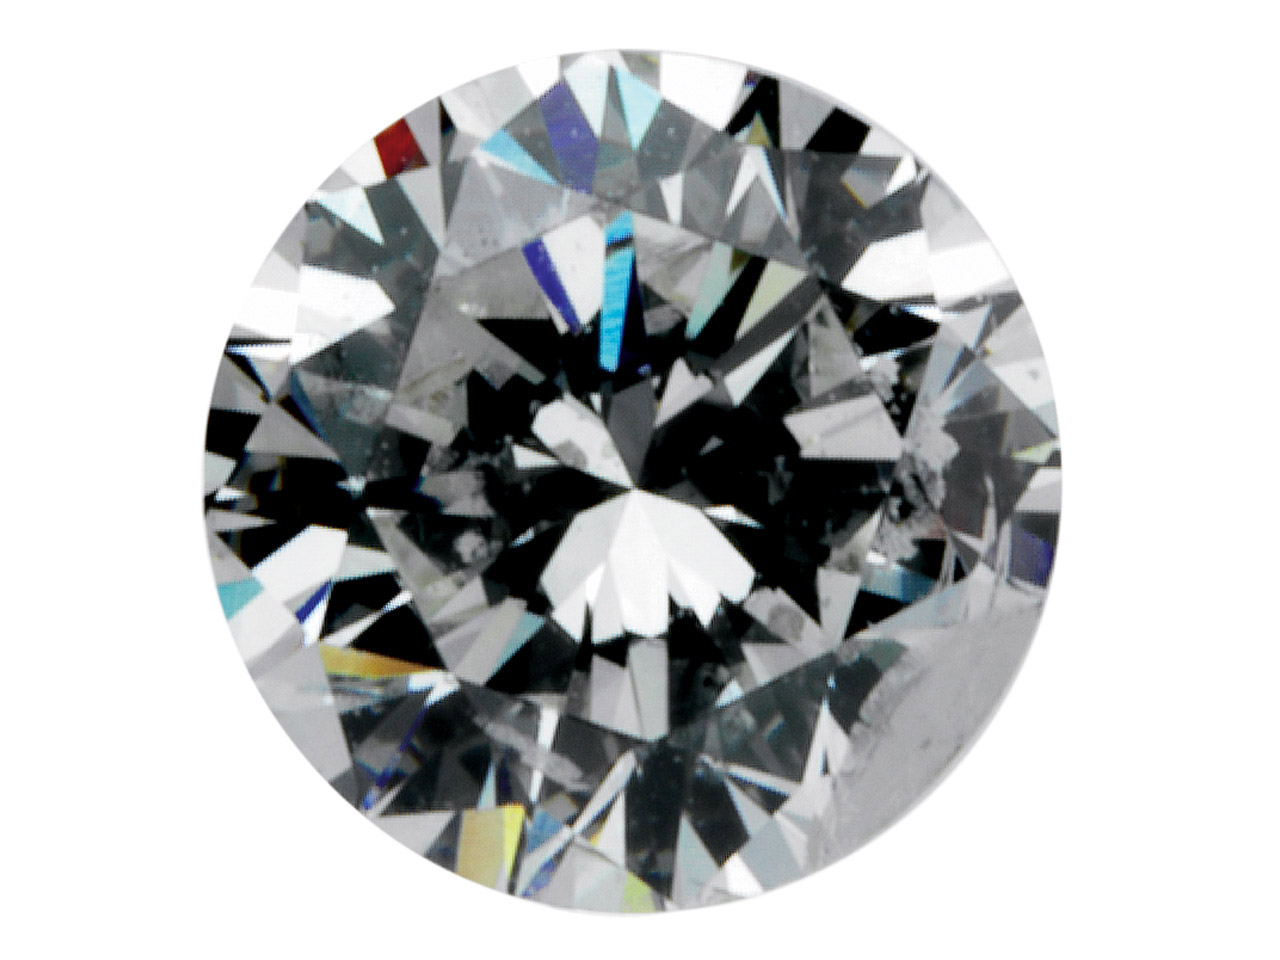 Diamond, Round, H-i/p2, 1pt/1.3mm